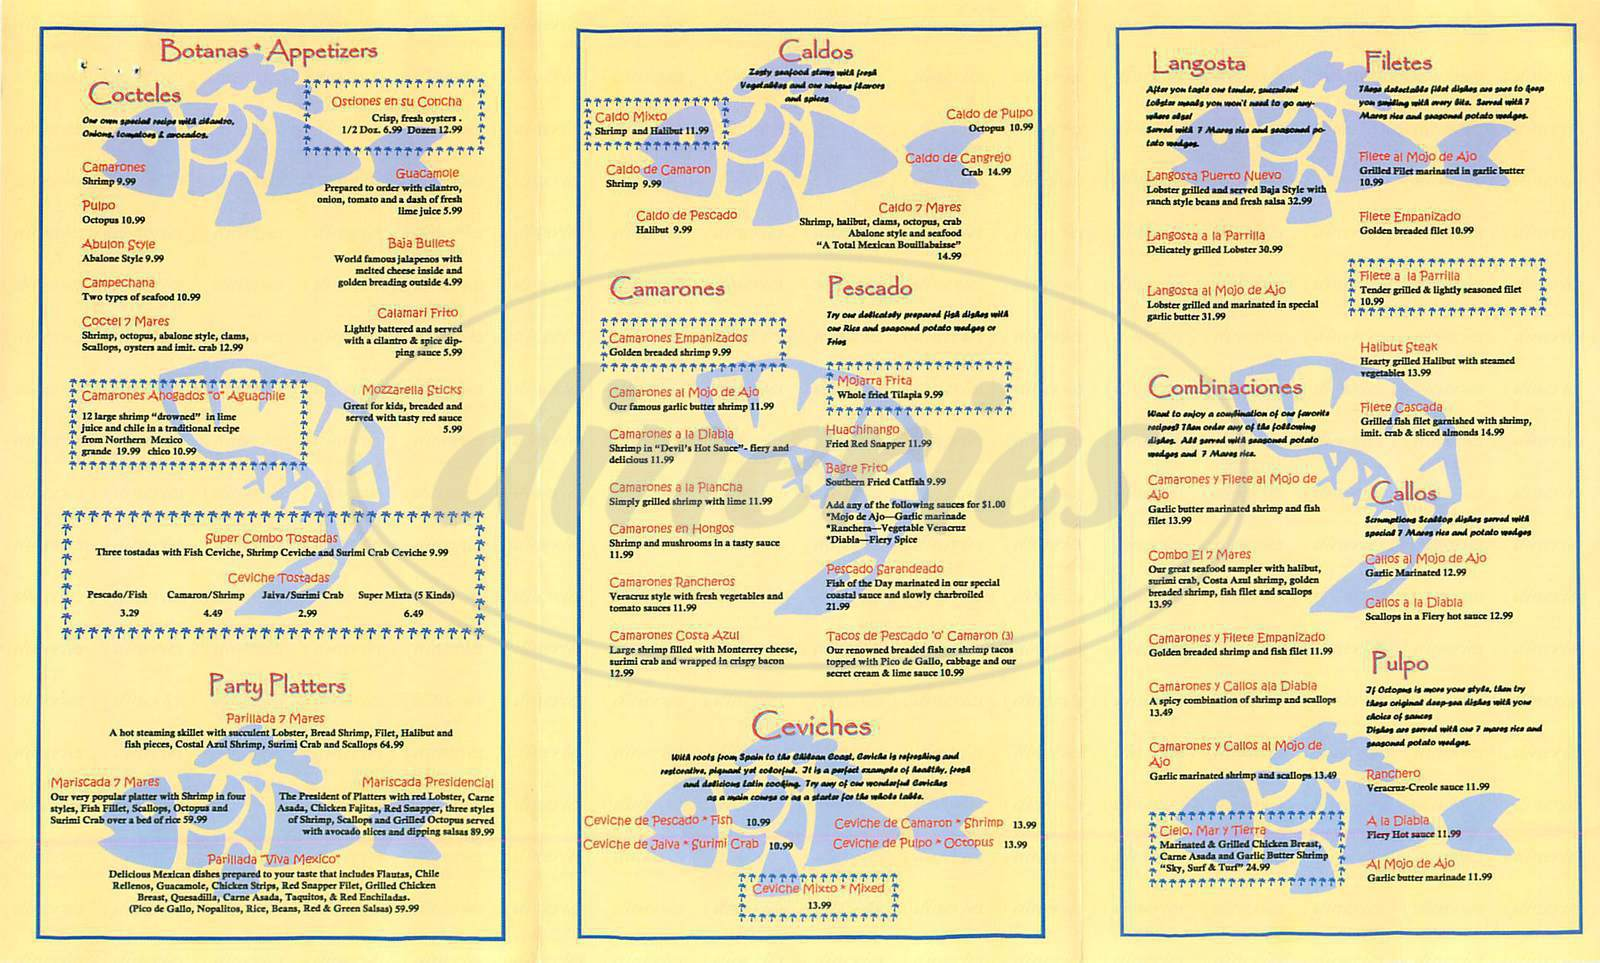 menu for El Original Siete Mares